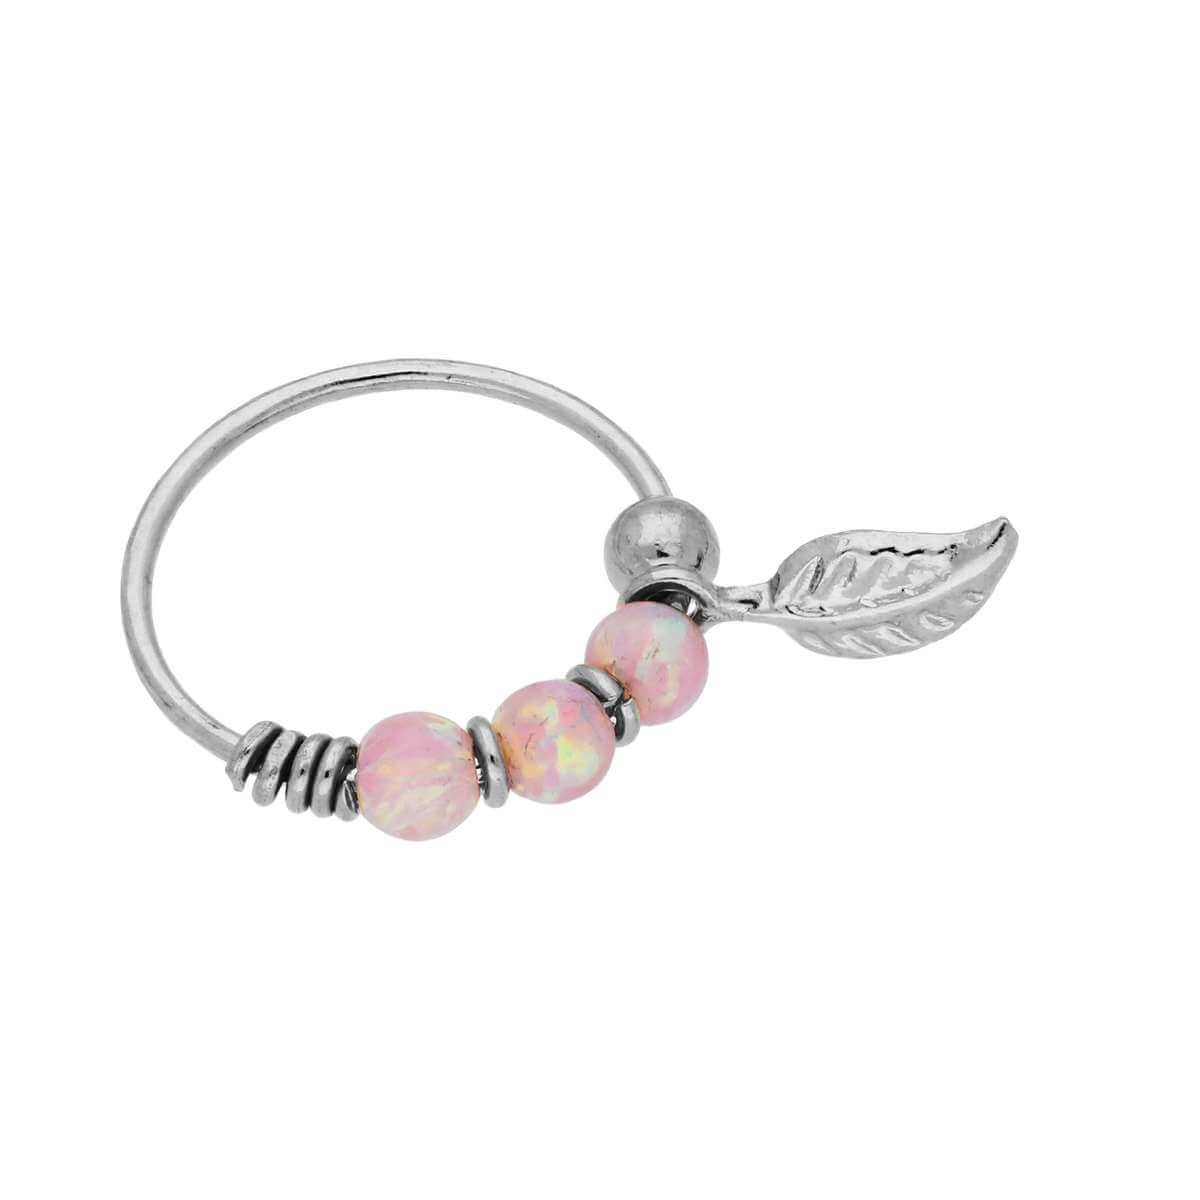 9ct White Gold Pink Opal Stones & Leaf 10mm Nose Ring